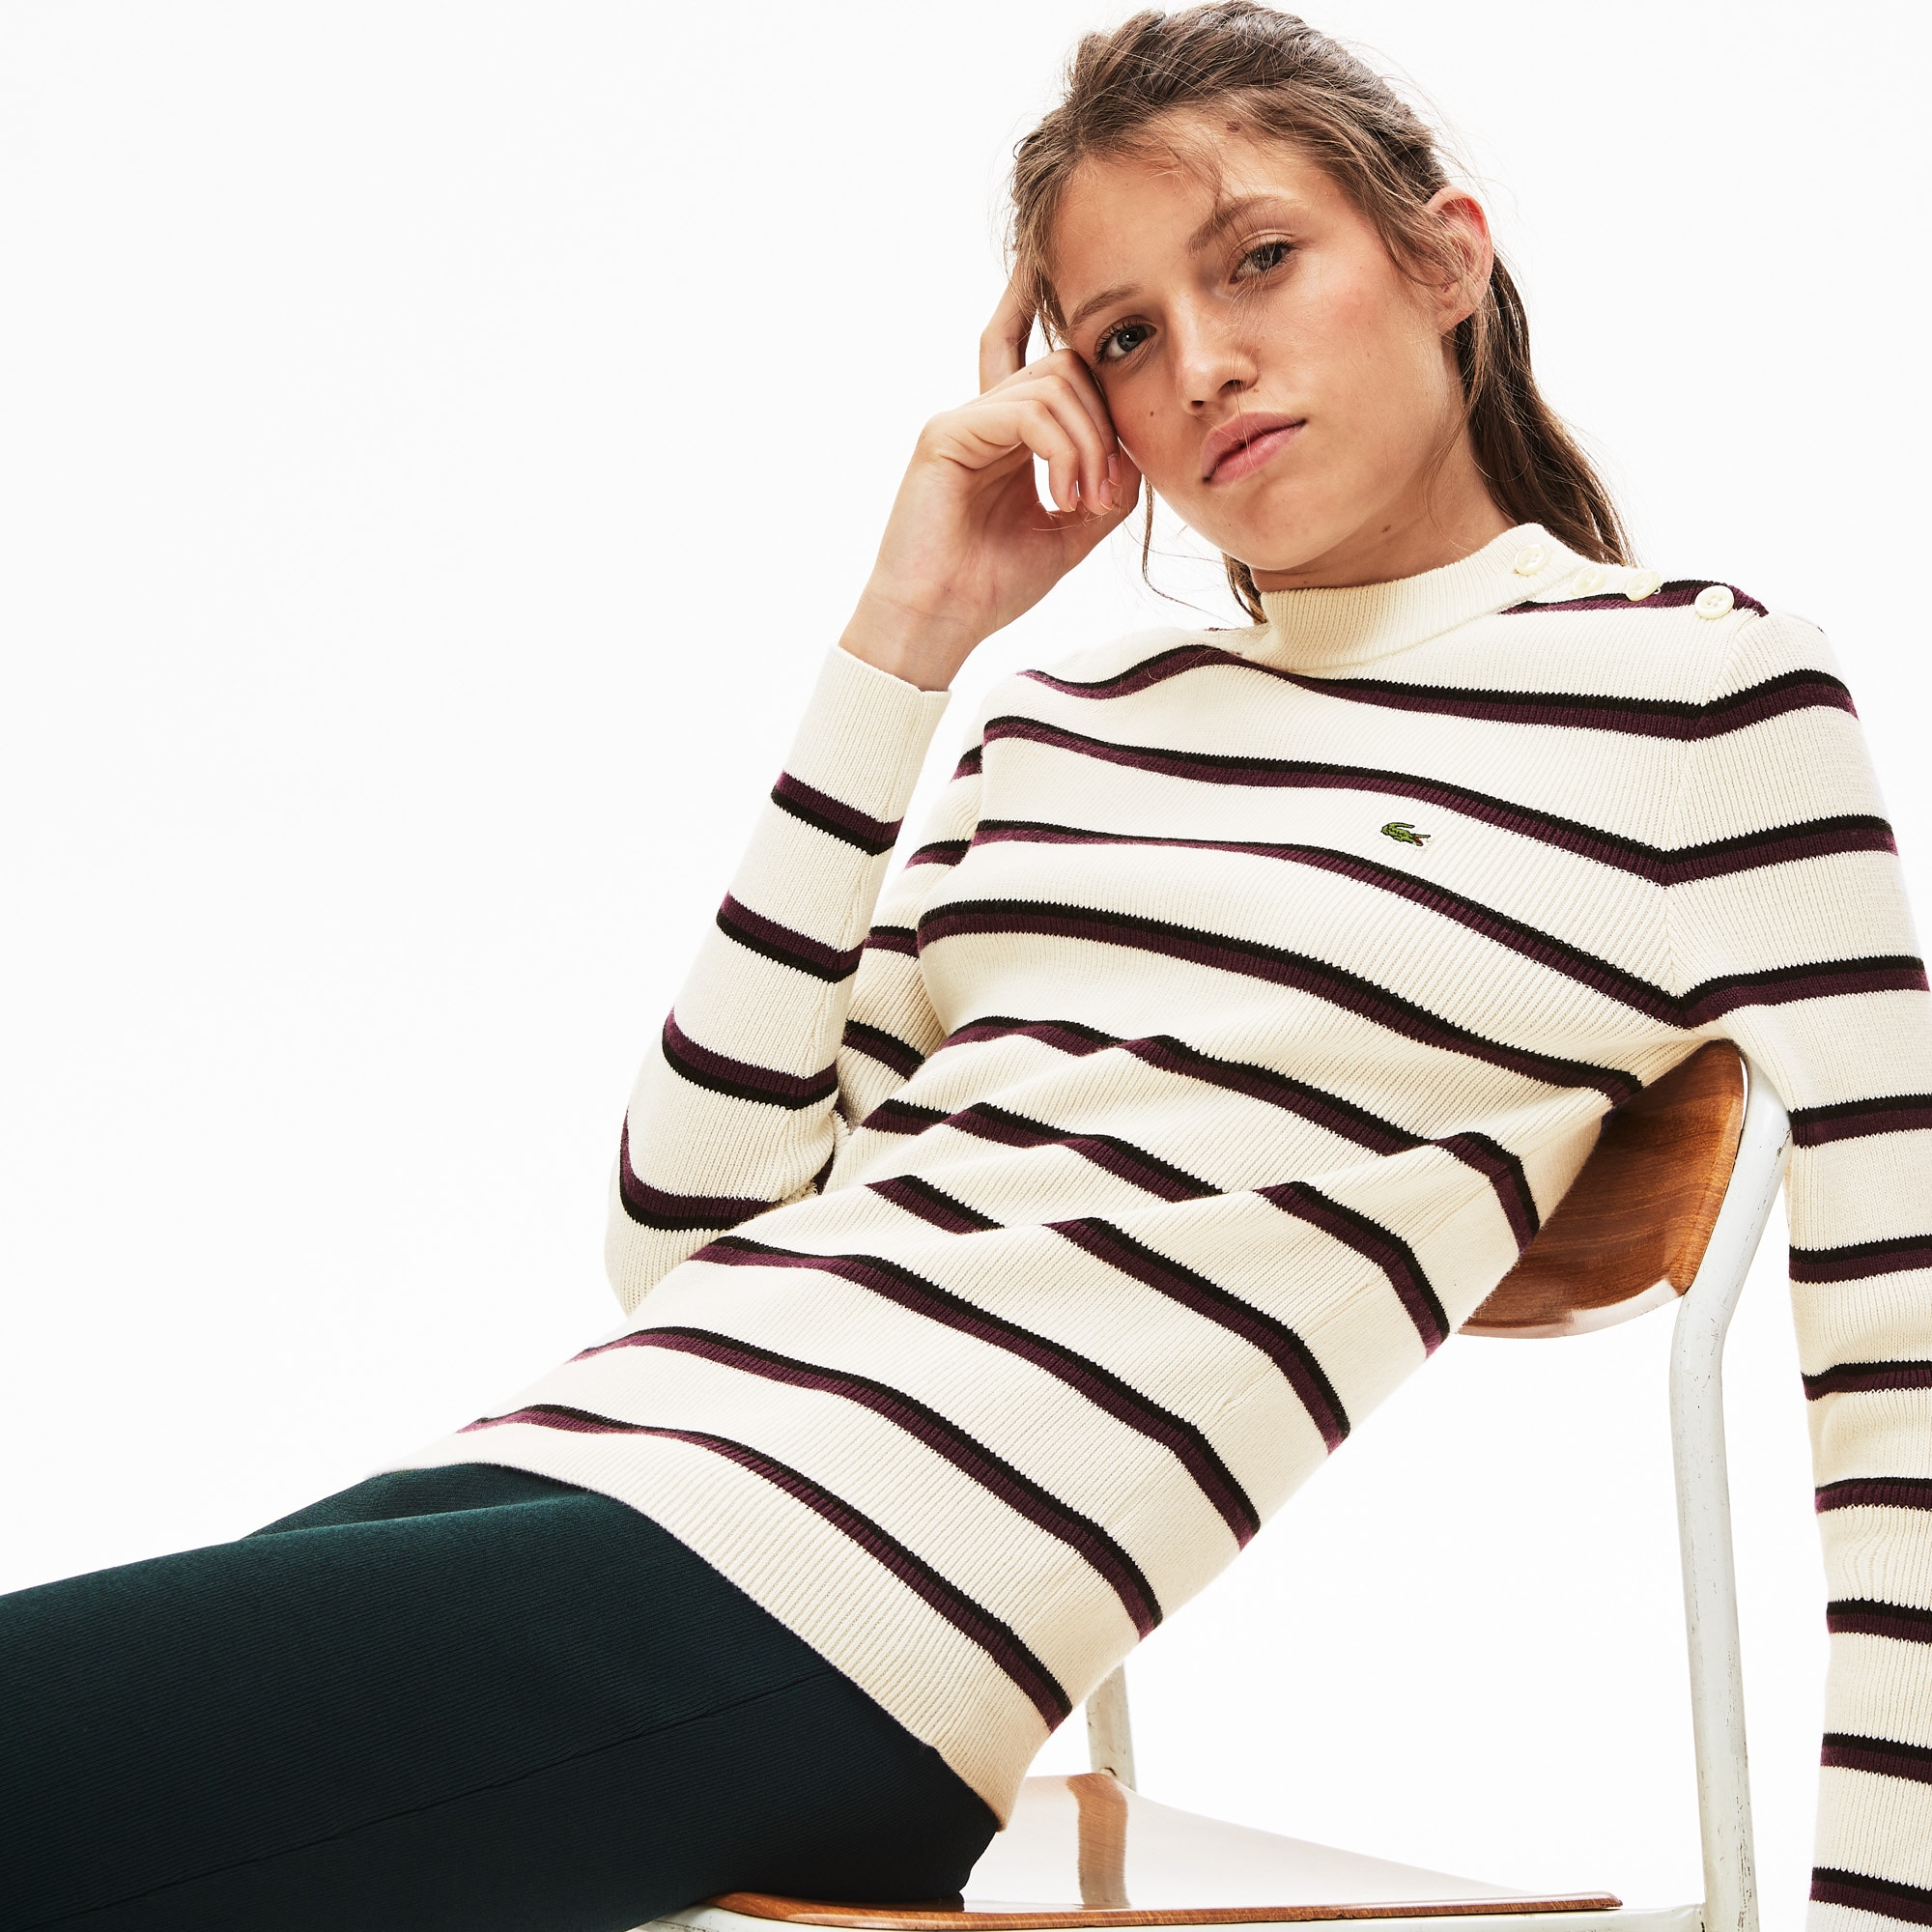 49ad1adab0 Women's Lacoste LIVE Crew Neck Striped Wool And Cotton Sweater